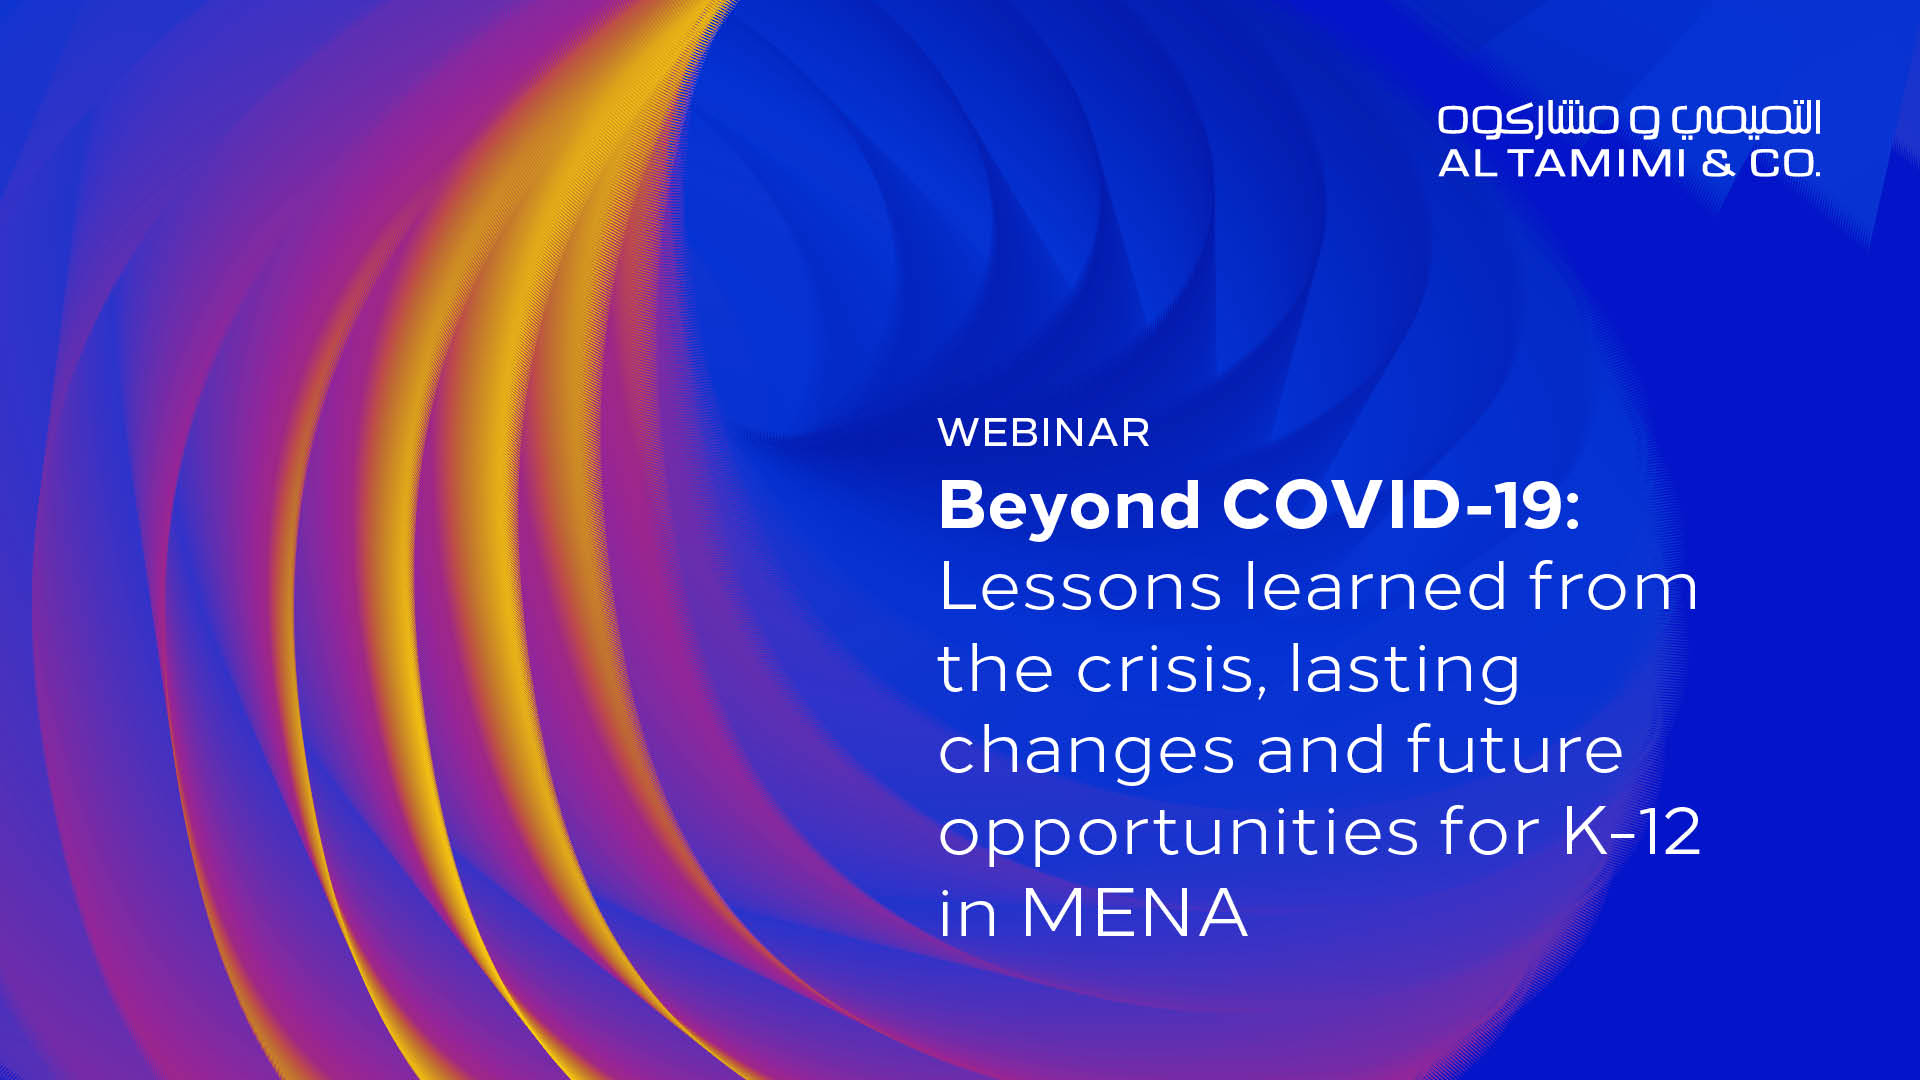 Beyond COVID-19: Lessons learned from the crisis, lasting changes and future opportunities for K-12 in MENA